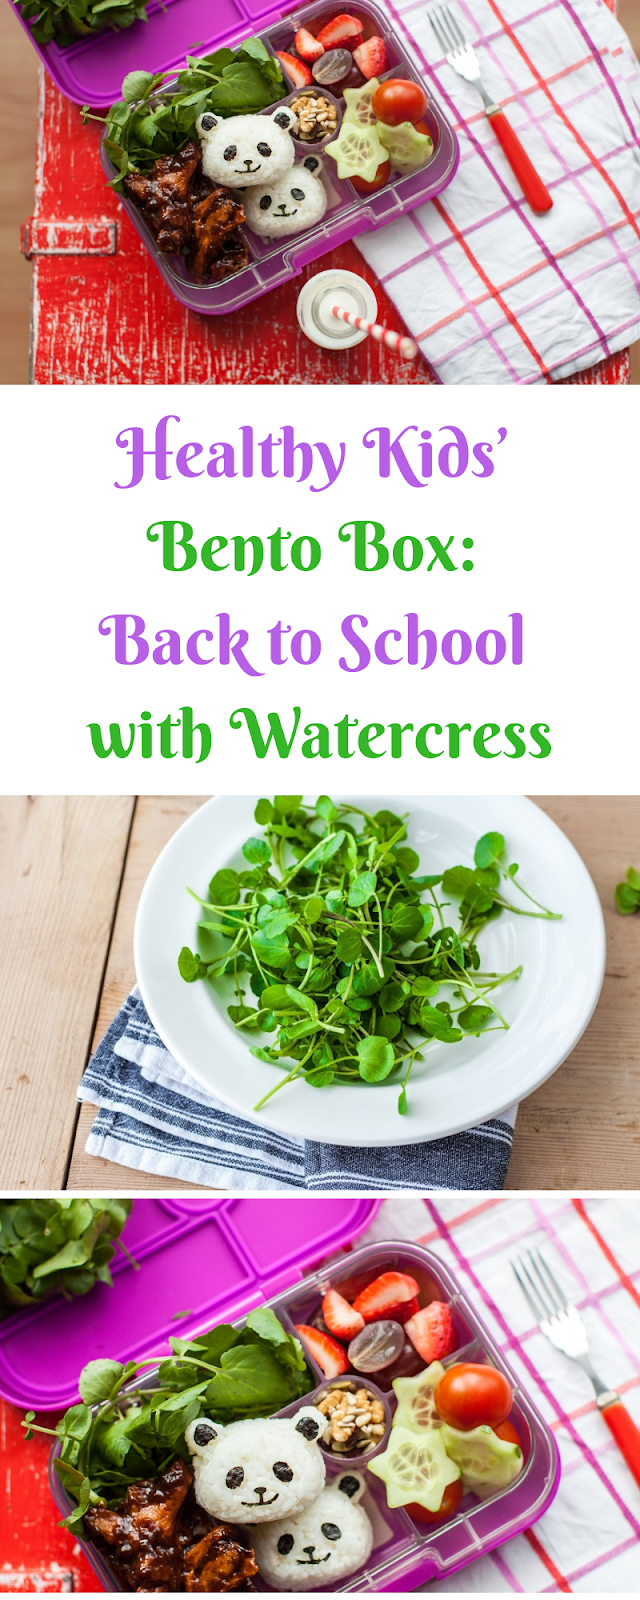 Healthy Kids' Bento Box: Back to School with Watercress